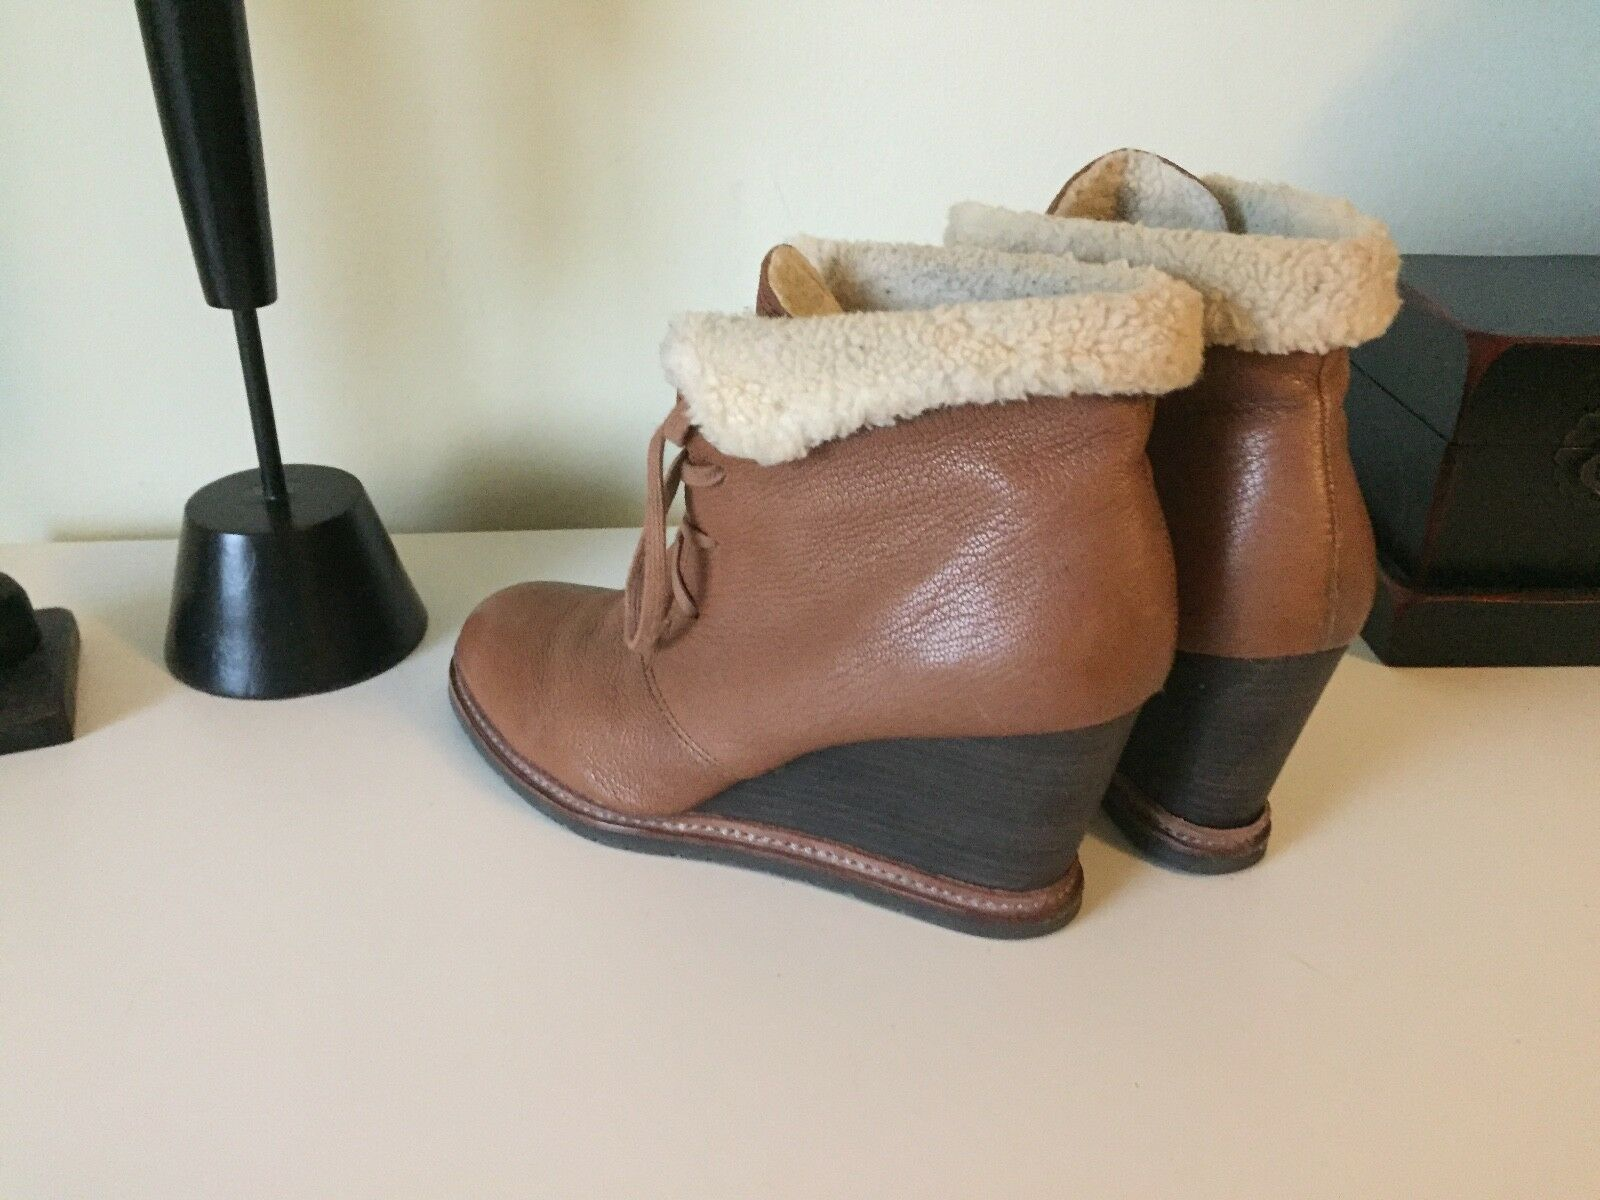 MARC O'POLO Keil-Stiefeletten hellbraun Booties Casual-Look Damen Gr. 40 Booties hellbraun Wedges cfdef7